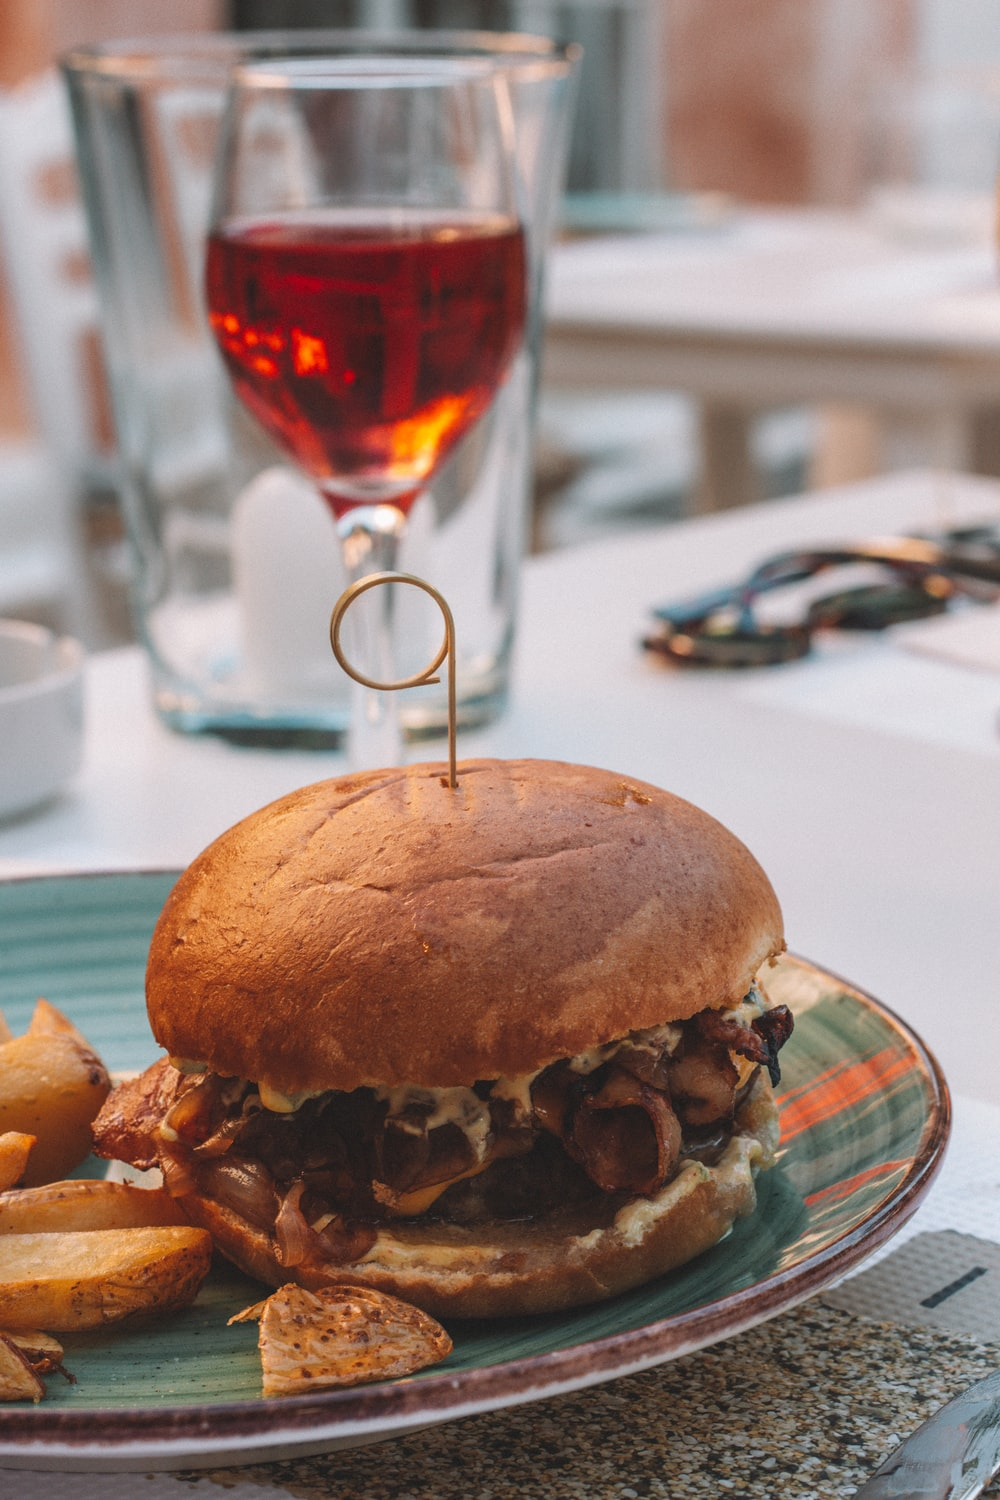 burger with fries on white table